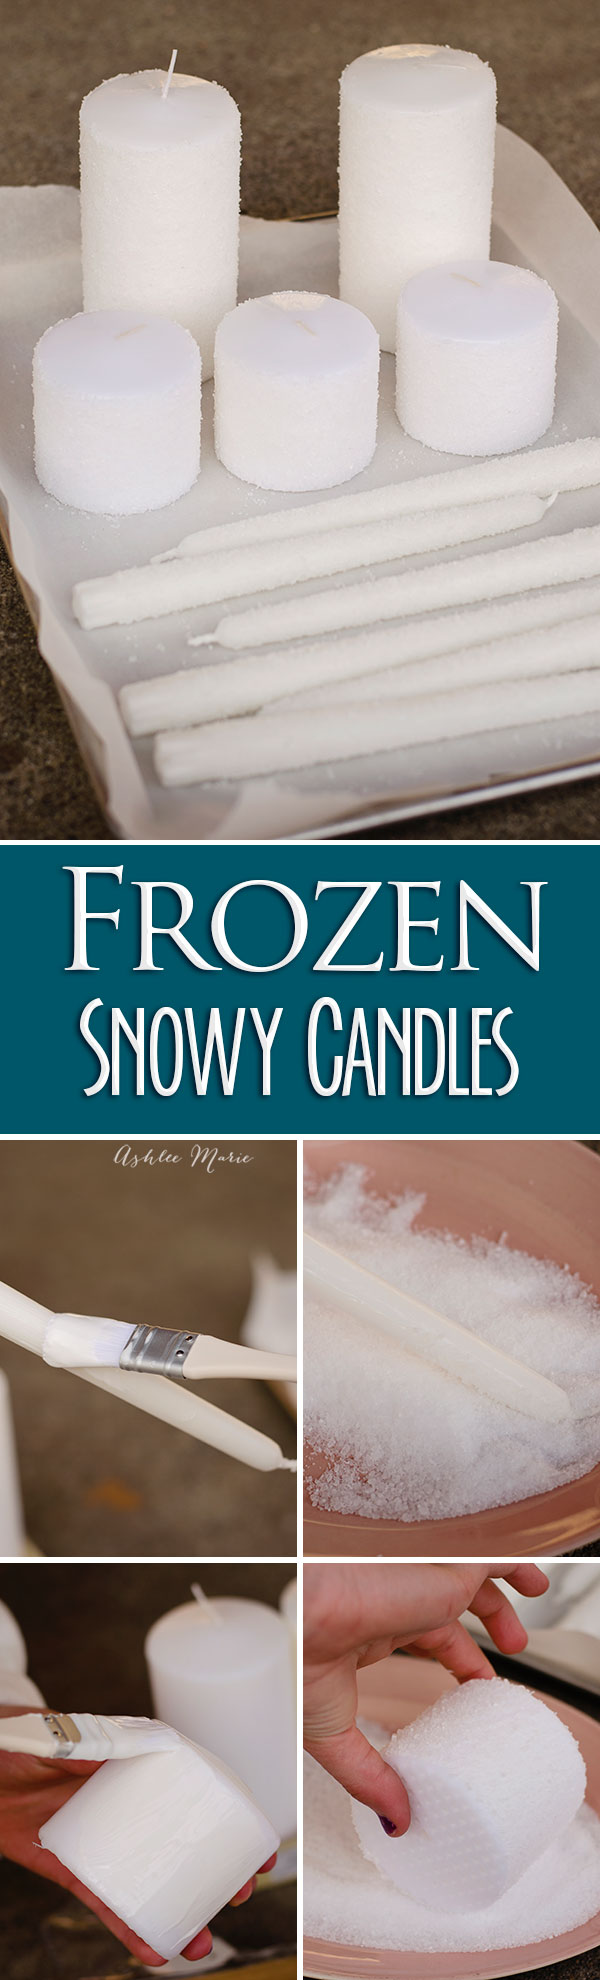 Its easy to use mod podge and epson salt to create a snowy look on your candles or other decorations